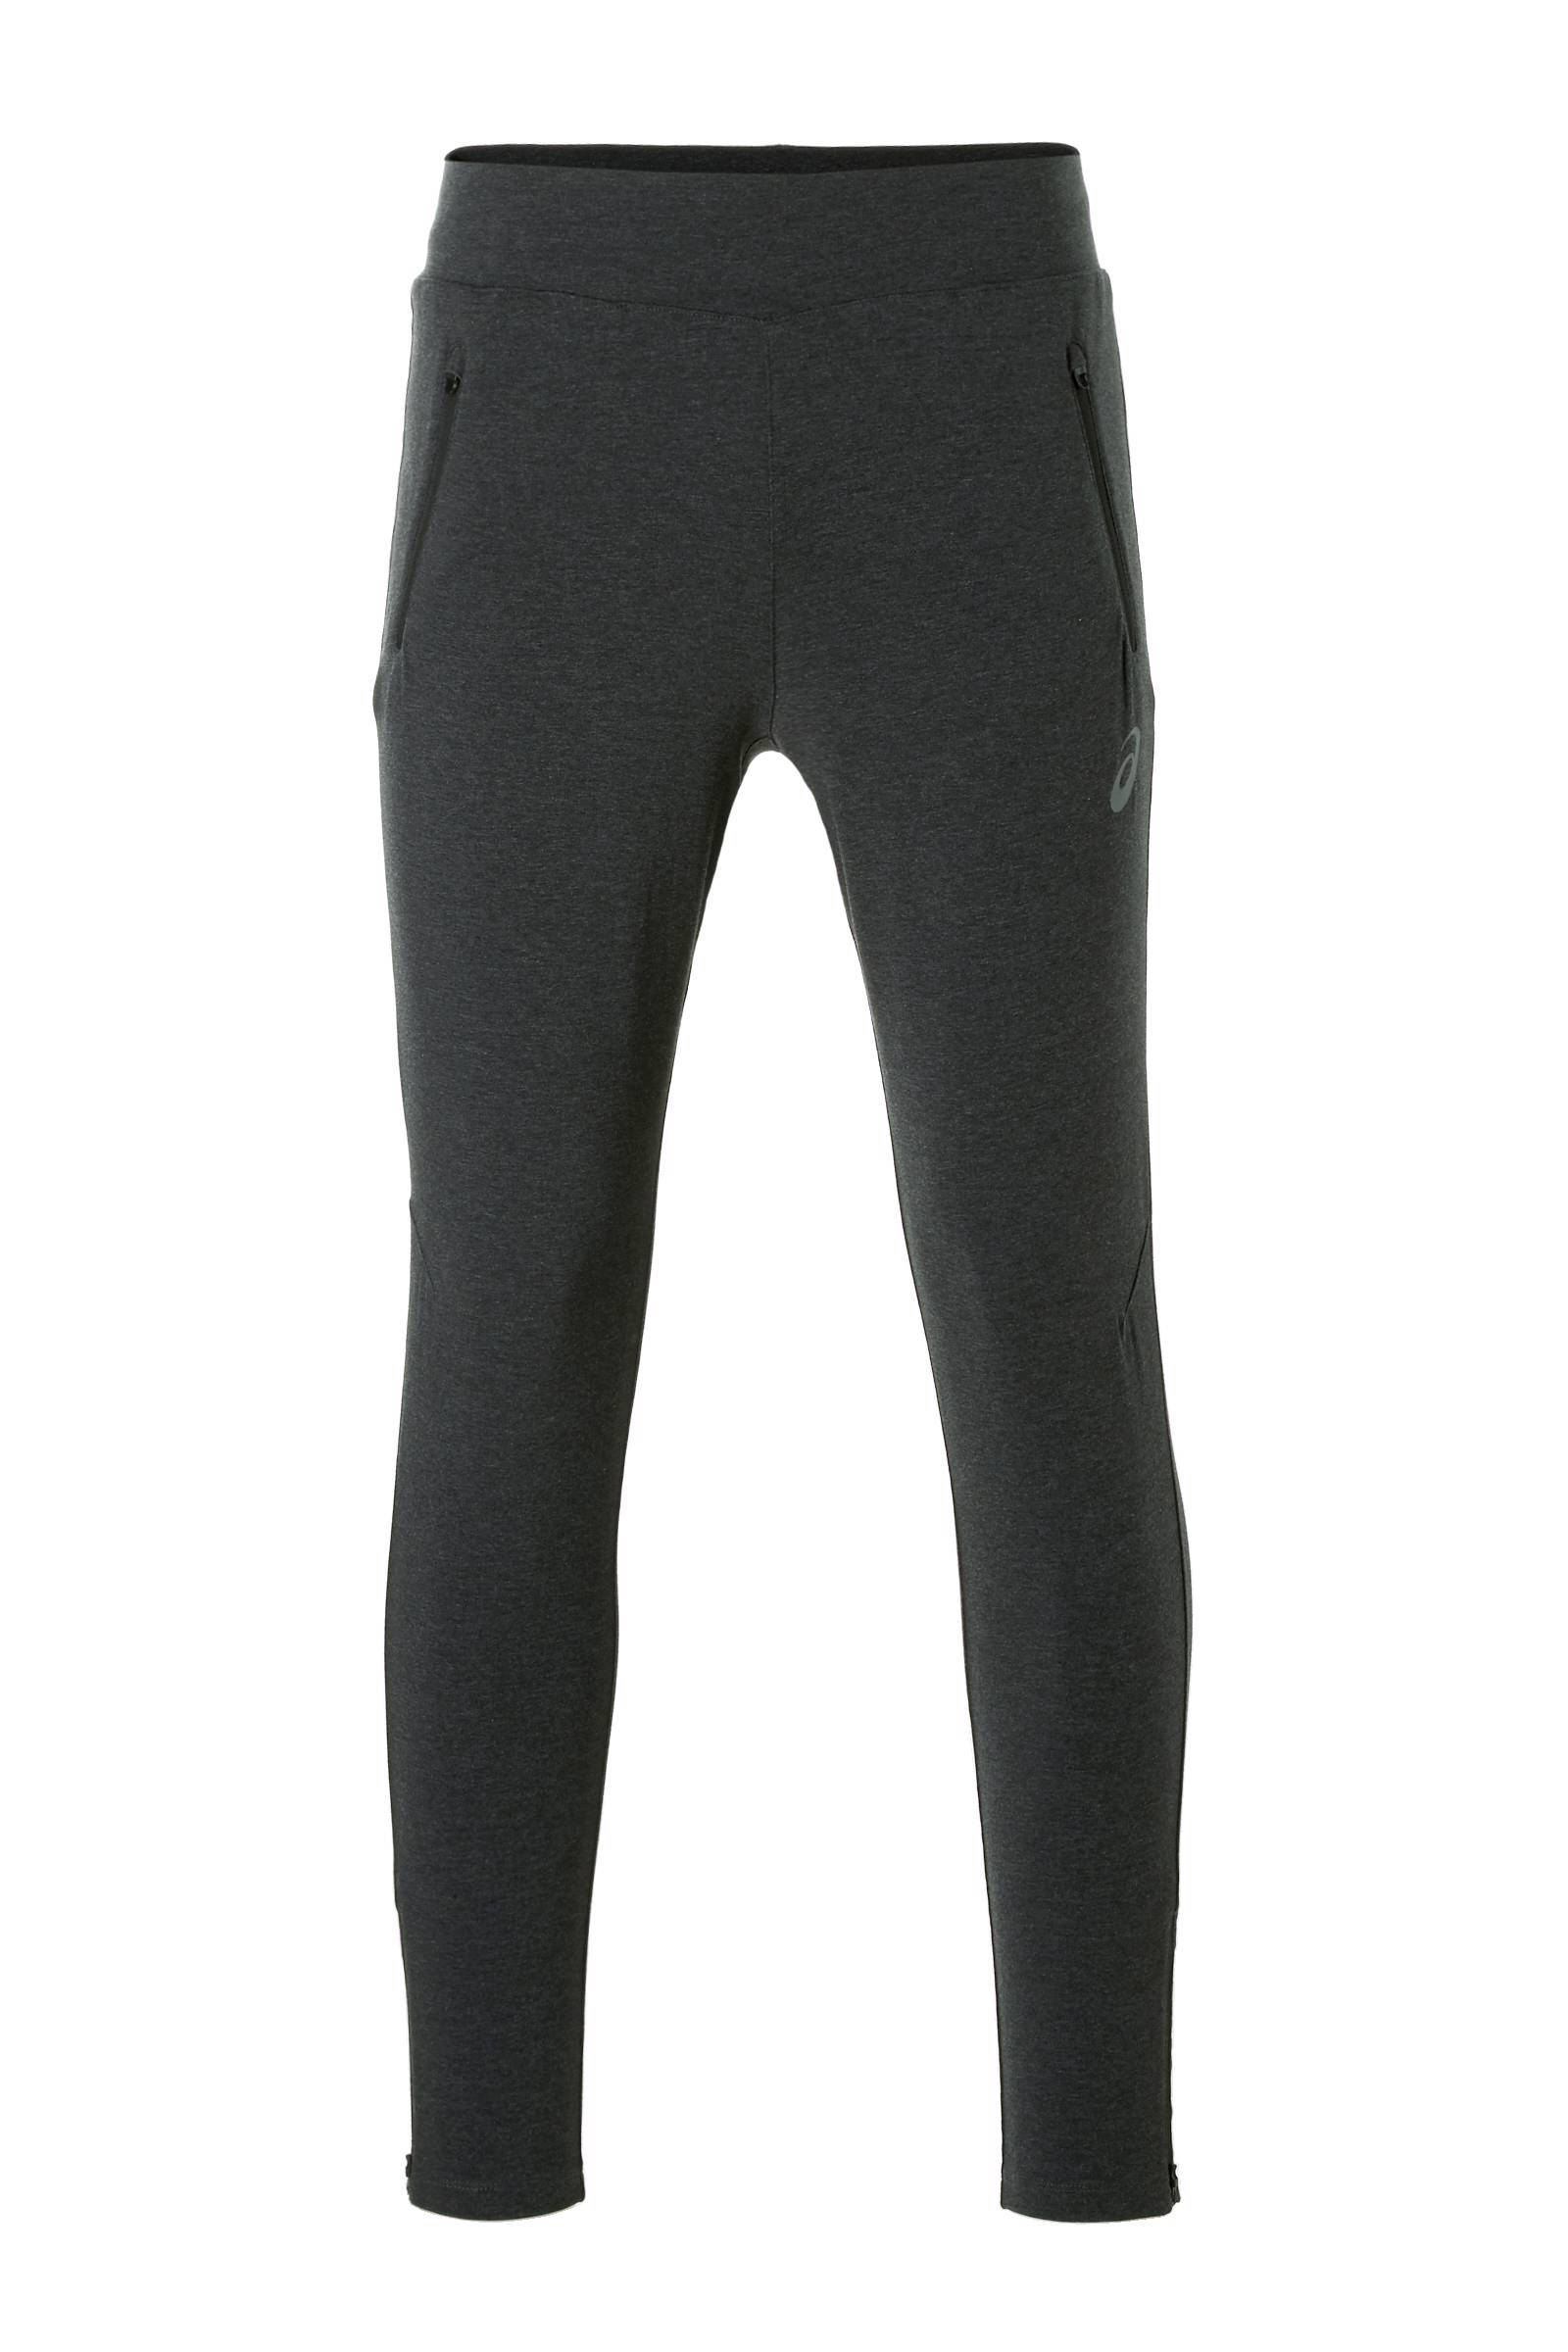 asics joggingbroek heren